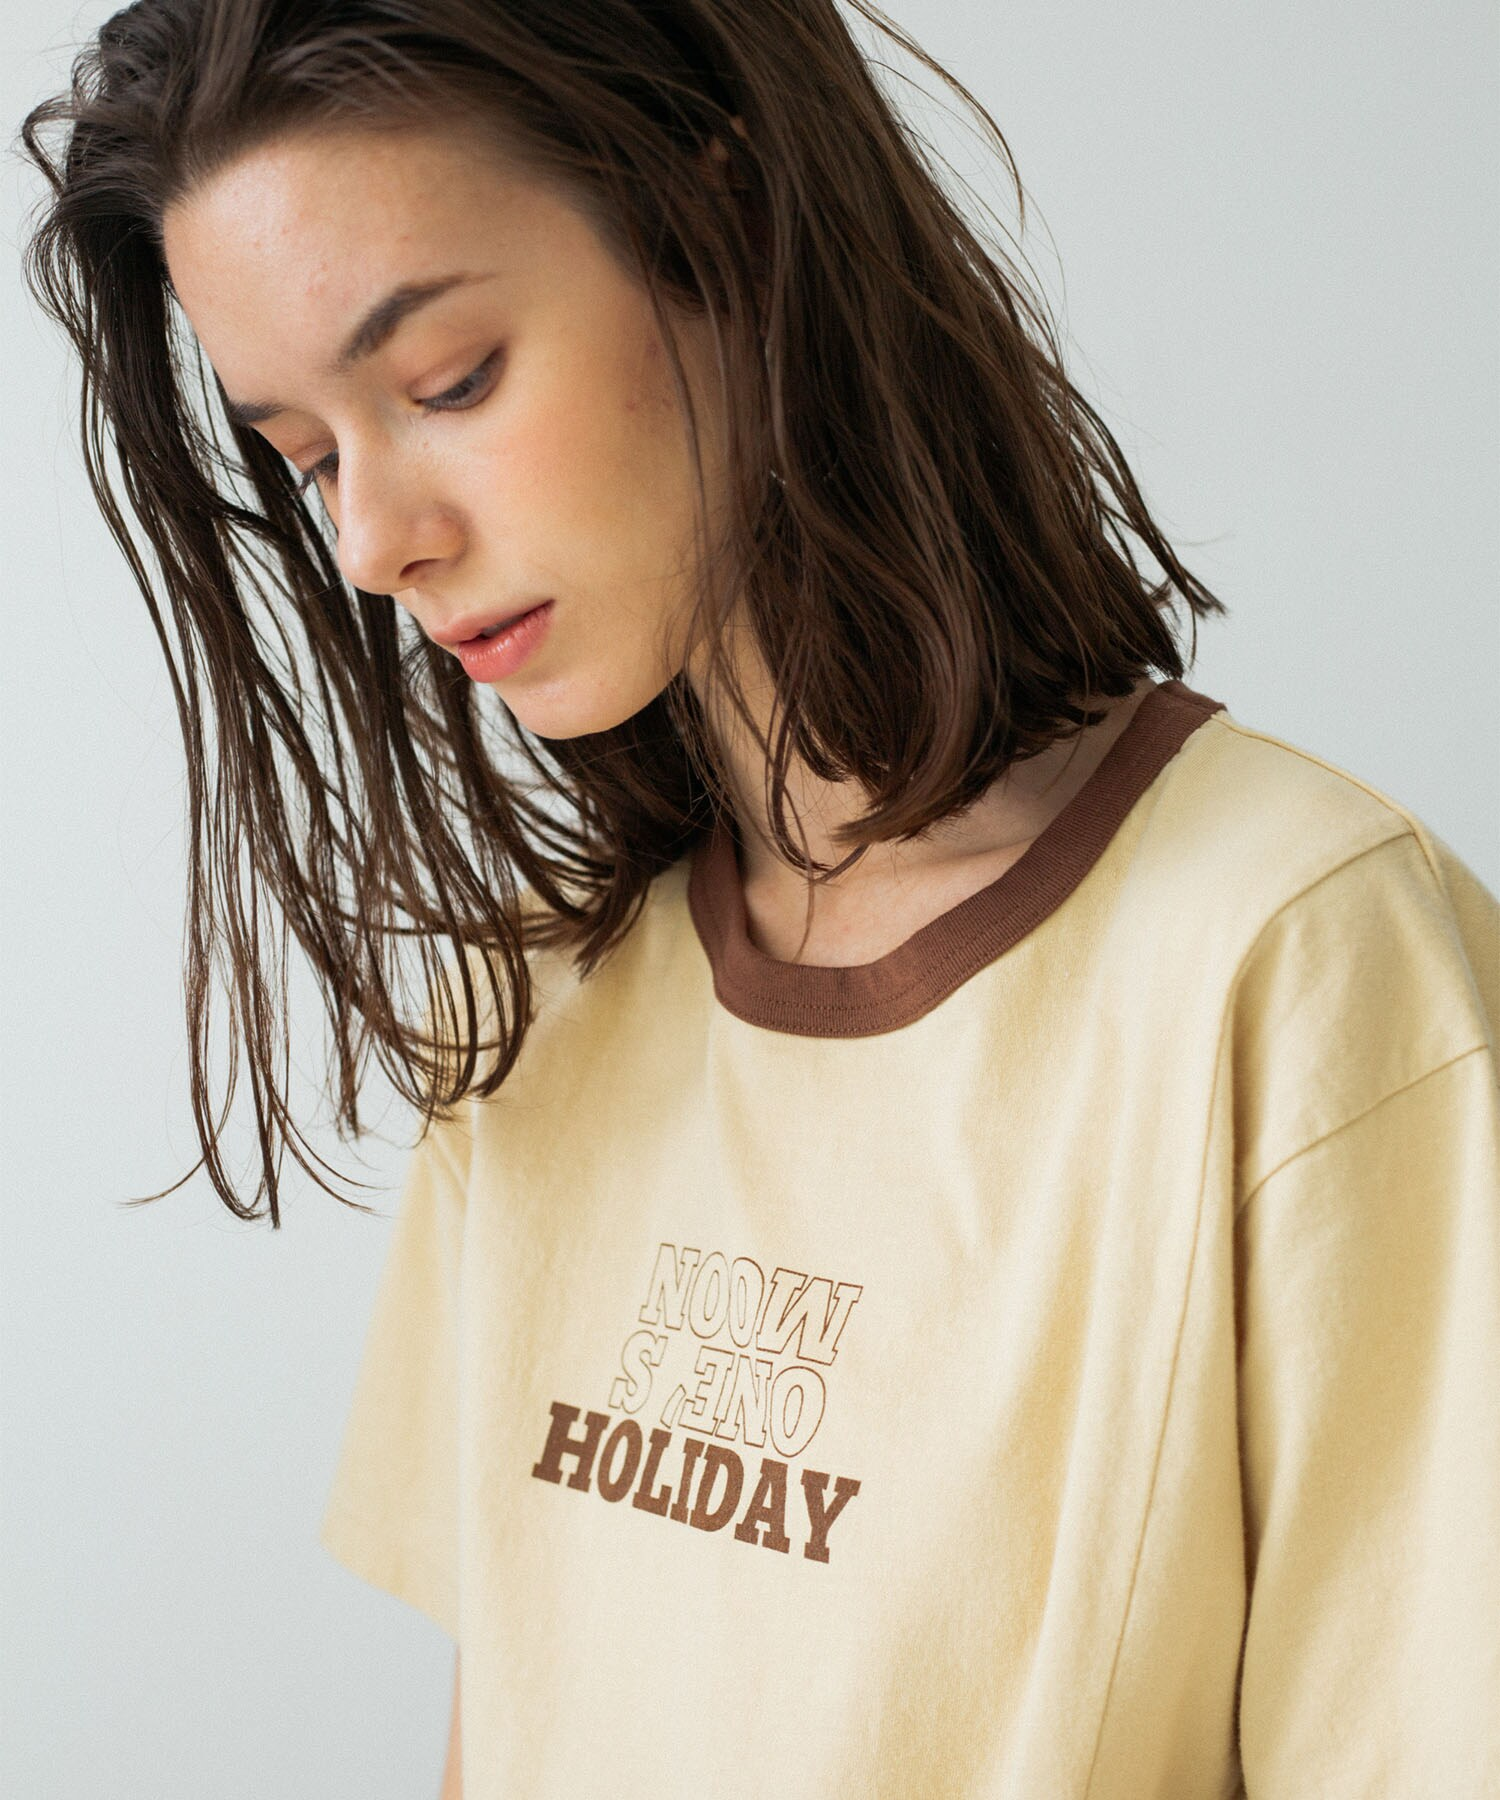 HOLIDAY TEE